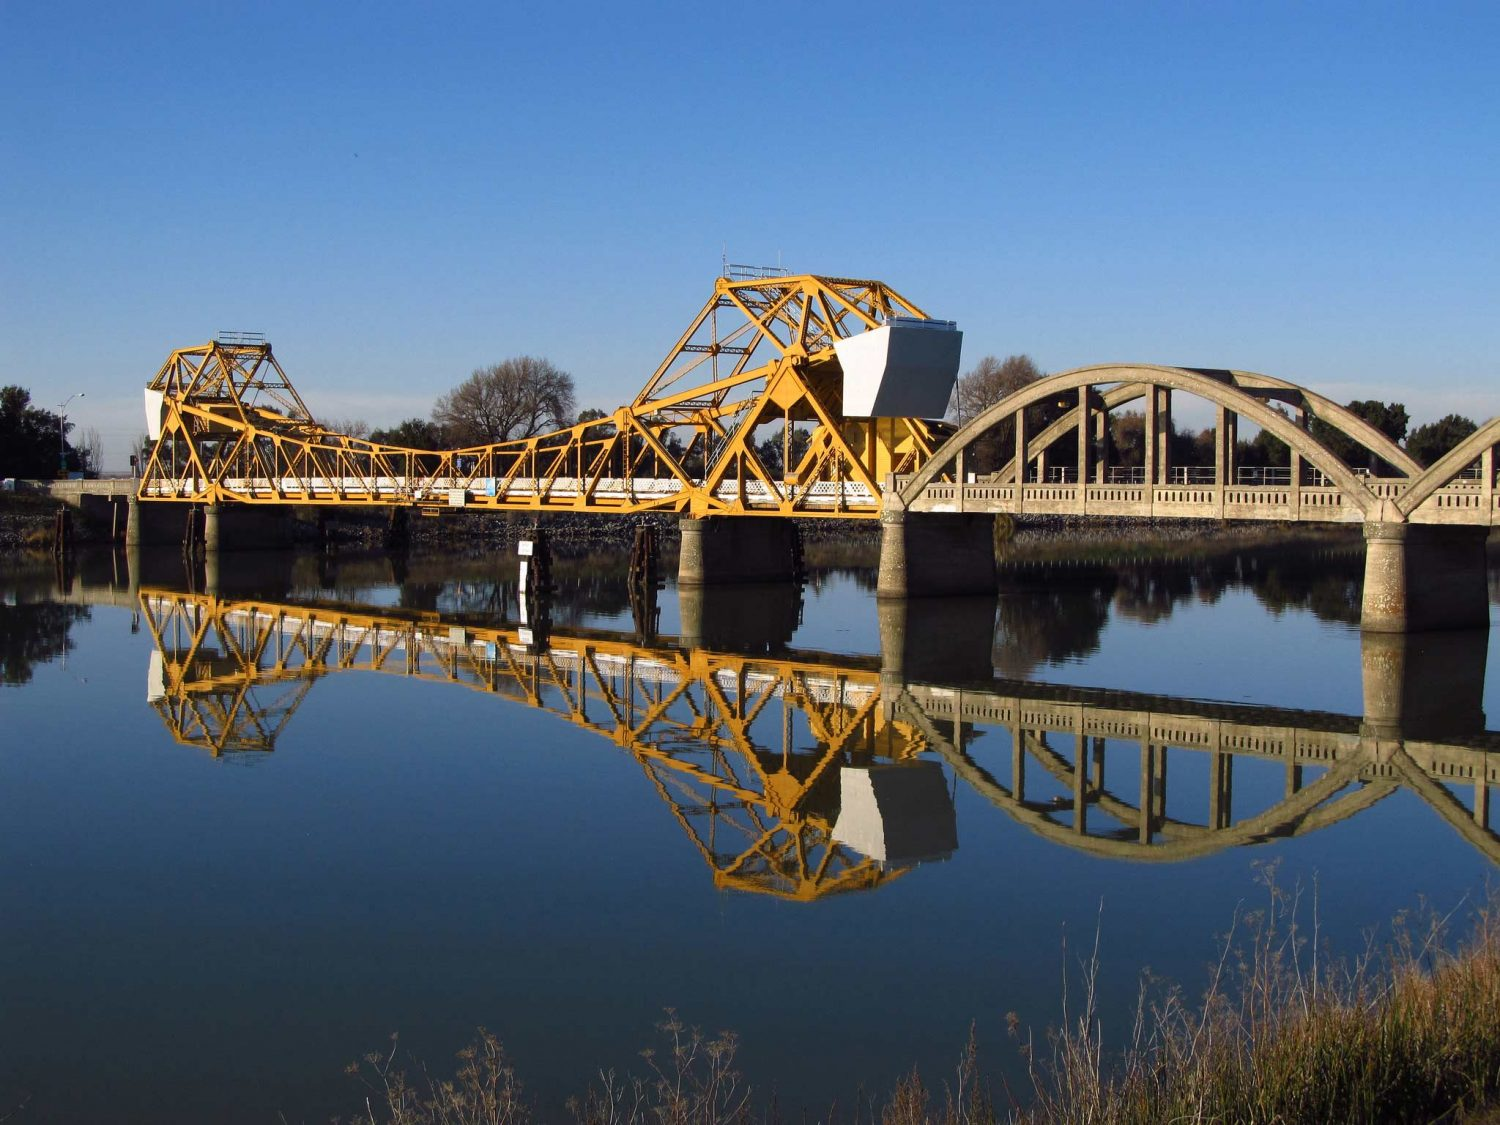 View of the Courtland Bridge in the California Delta